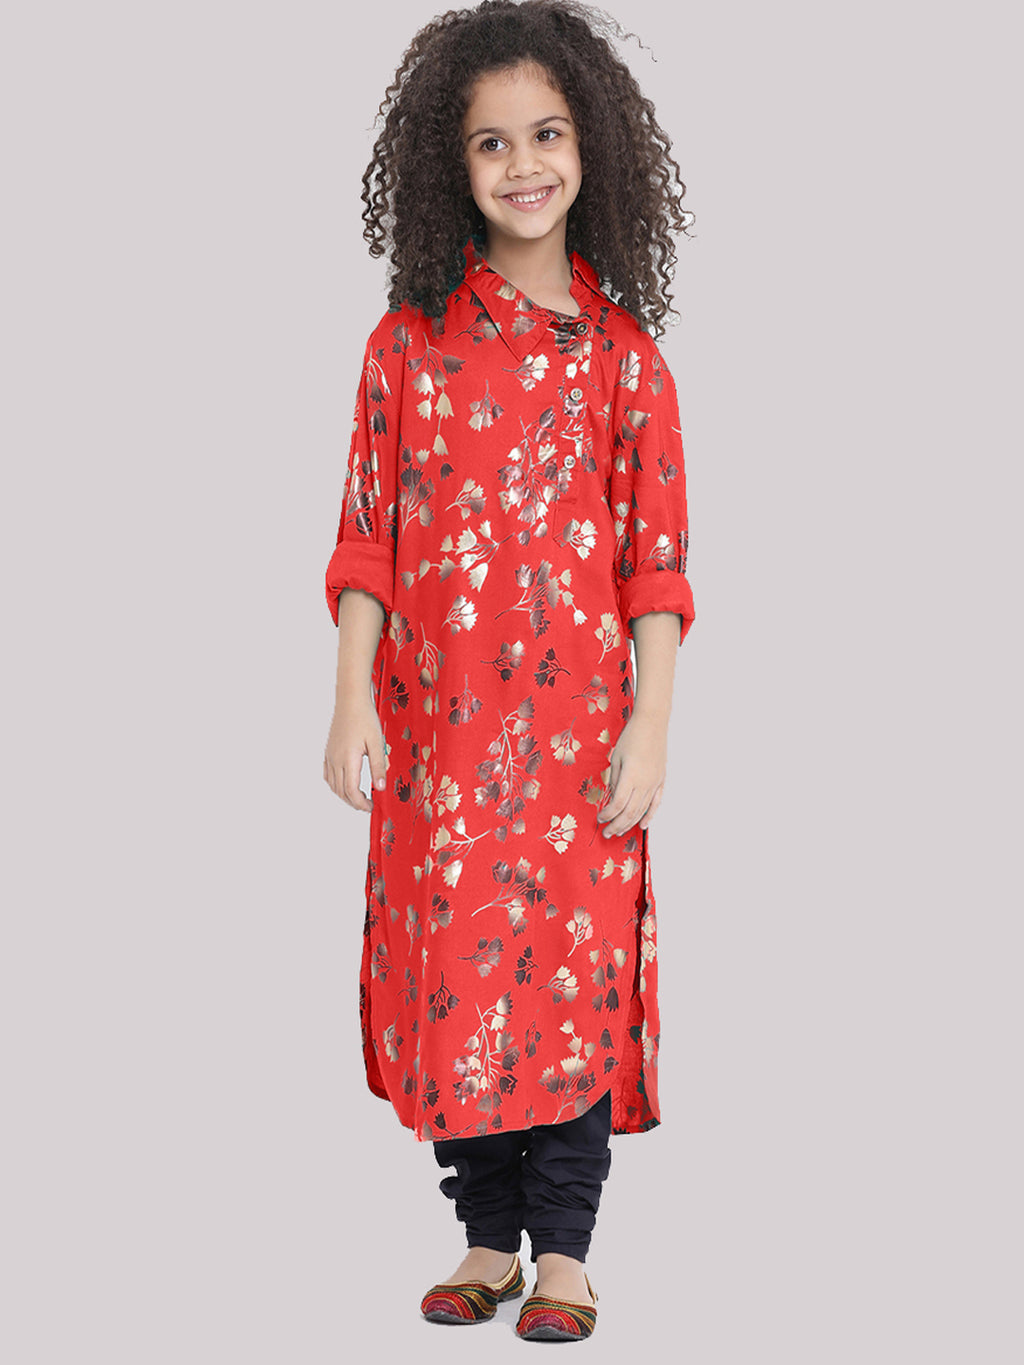 Vanni2 Kurta Pajama set for girls